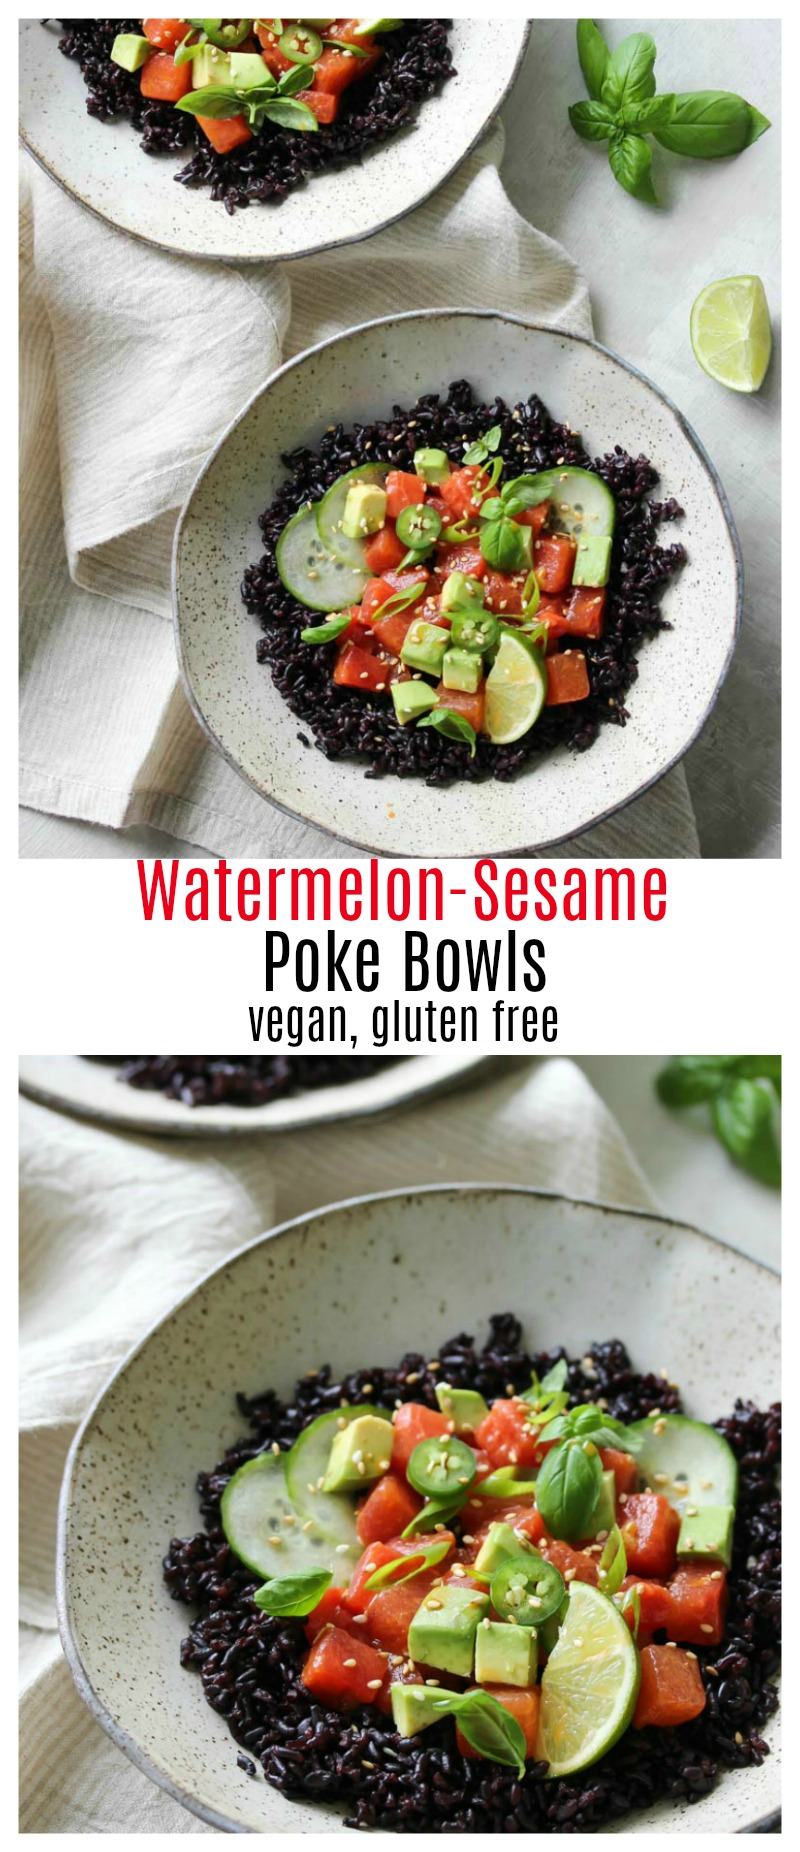 Watermelon-Sesame Poke Bowls (vegan, gluten free) | dishingouthealth.com